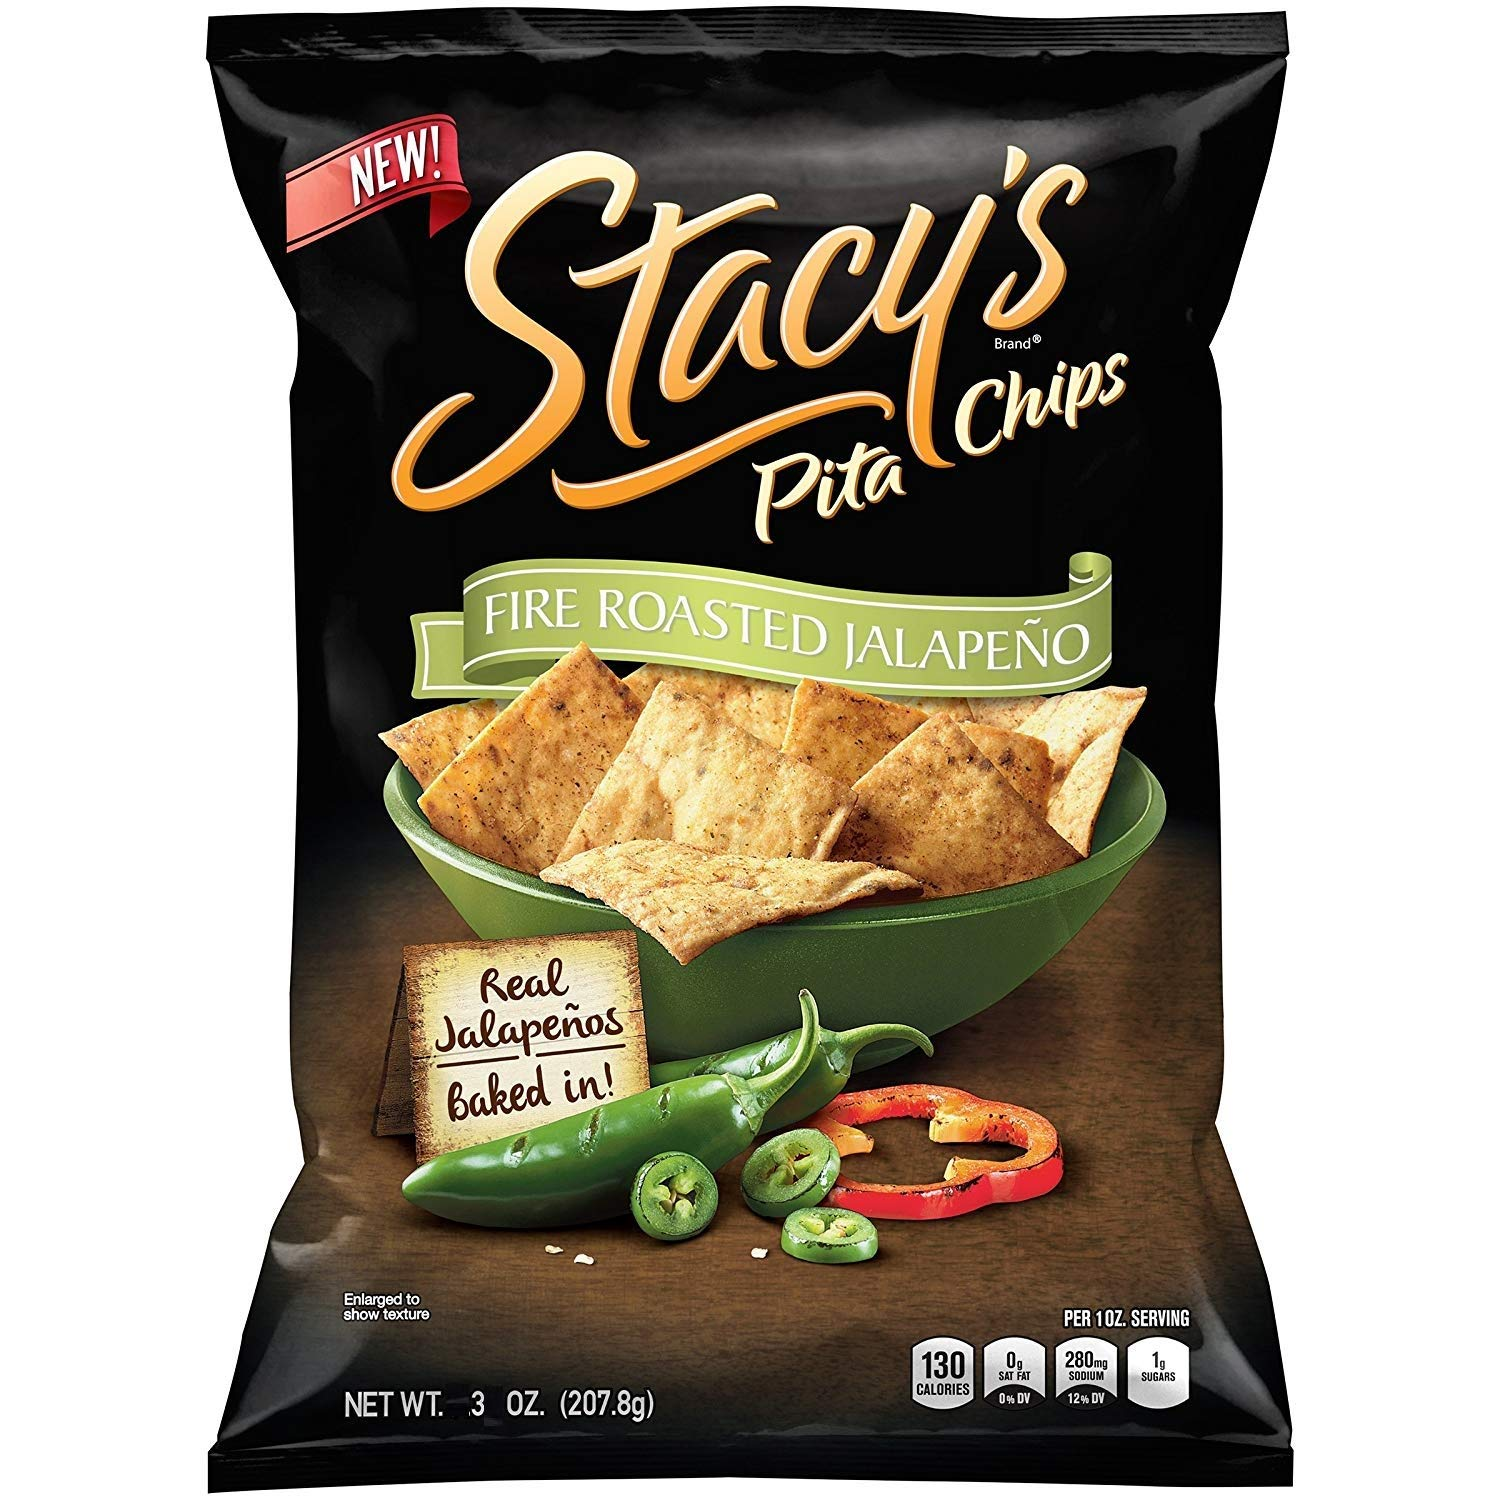 Stacy's Pita Chips Fire Roasted Jalapeno 3 oz (Pack 8) by Stacy's